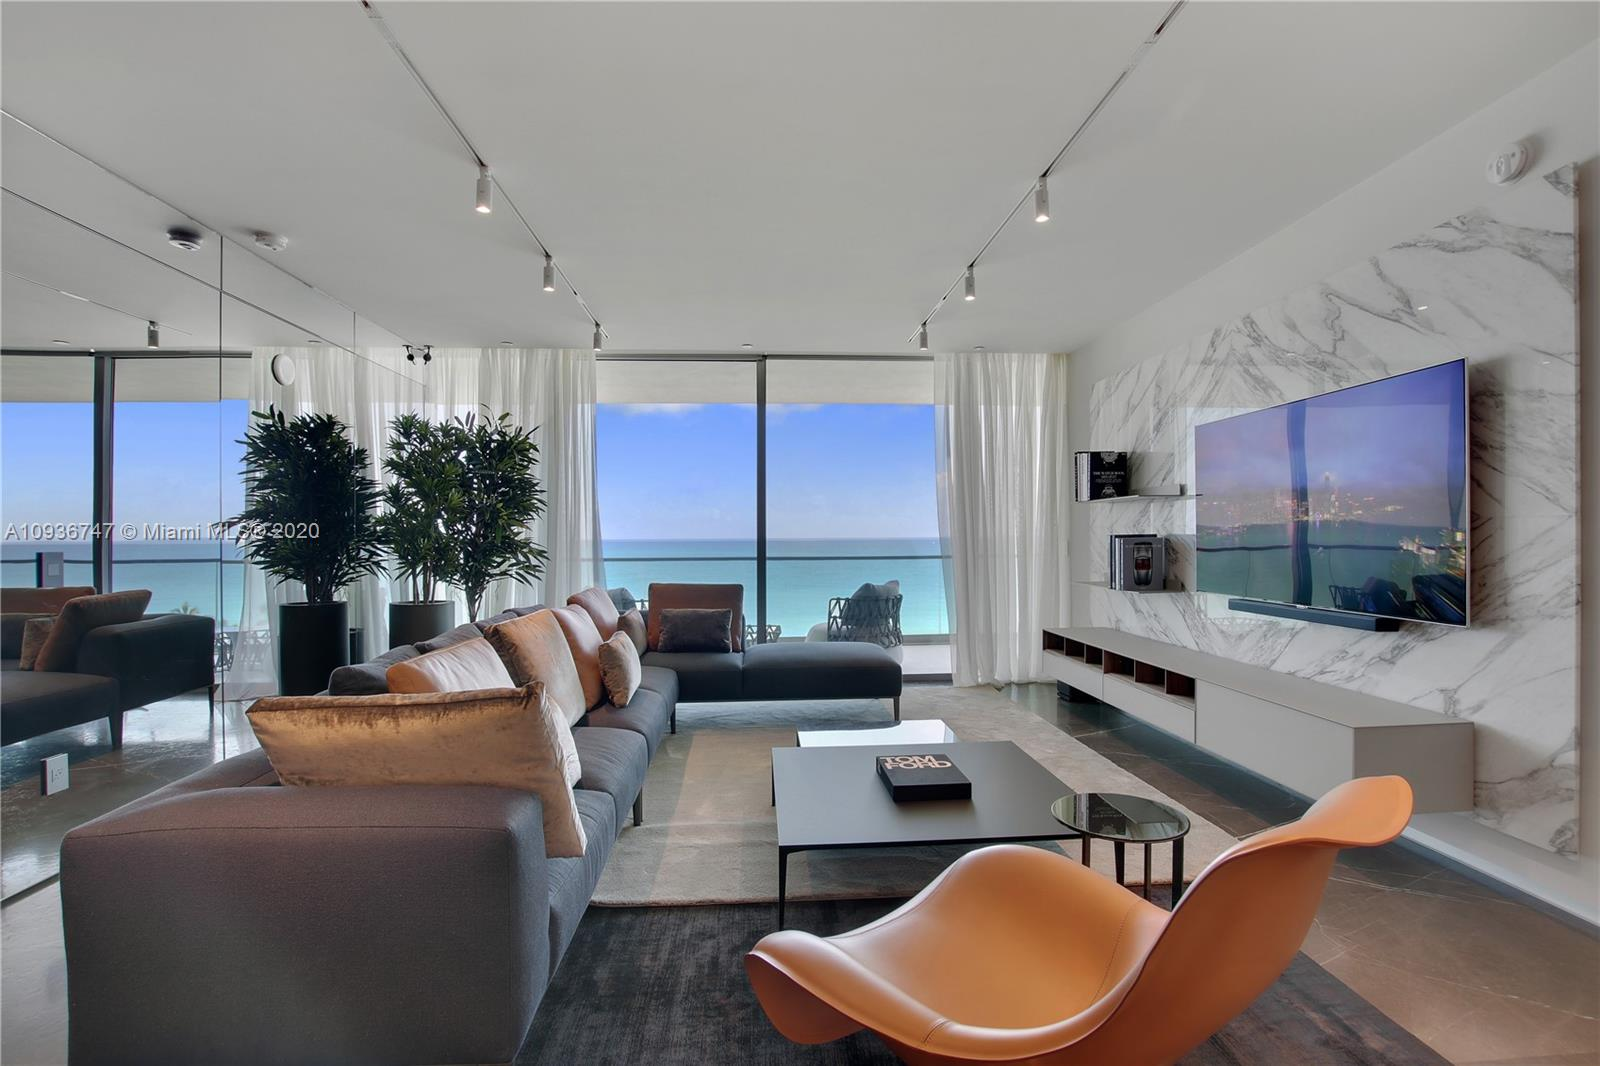 NEWLY REMODELED UNIT IN OCEANA BAL HARBOUR. STATE OF THE ART RENOVATION, WITH INCREDIBLE ITALIAN FINISHES. TOP OF THE LINE FURNITURE BY BAXTER, MINOTI, RIMADESIO CLOSETS, DESIGNER LIGHT FIXTURES. BOOK MATCH FINEST ITALIAN MARBLE FROM ITALY. OCEANAS 5 STAR AMENITIES INCLUDE A RESTAURANT BY TOSCANA DIVINO, TWO POOLS, CABANAS, GYM/FITNESS ROOMS, LUXURY SPA , HOME THEATER, KIDS ROOM, PARTY ROOM, 2 TENNIS COURTS -  NO EXPENSE WAS SPARED. THE DEN WAS CONVERTED TO A FULL SIZE BEDROOM WITH A SEPERATE DOOR TO FULL BATHROOM. IT IS ONE OF THE NICEST FINISHED UNITS FOR SALE IN OCEANA BAL HARBOUR, COME SEE IT FOR YOURSELF. EASY TO SHOW.